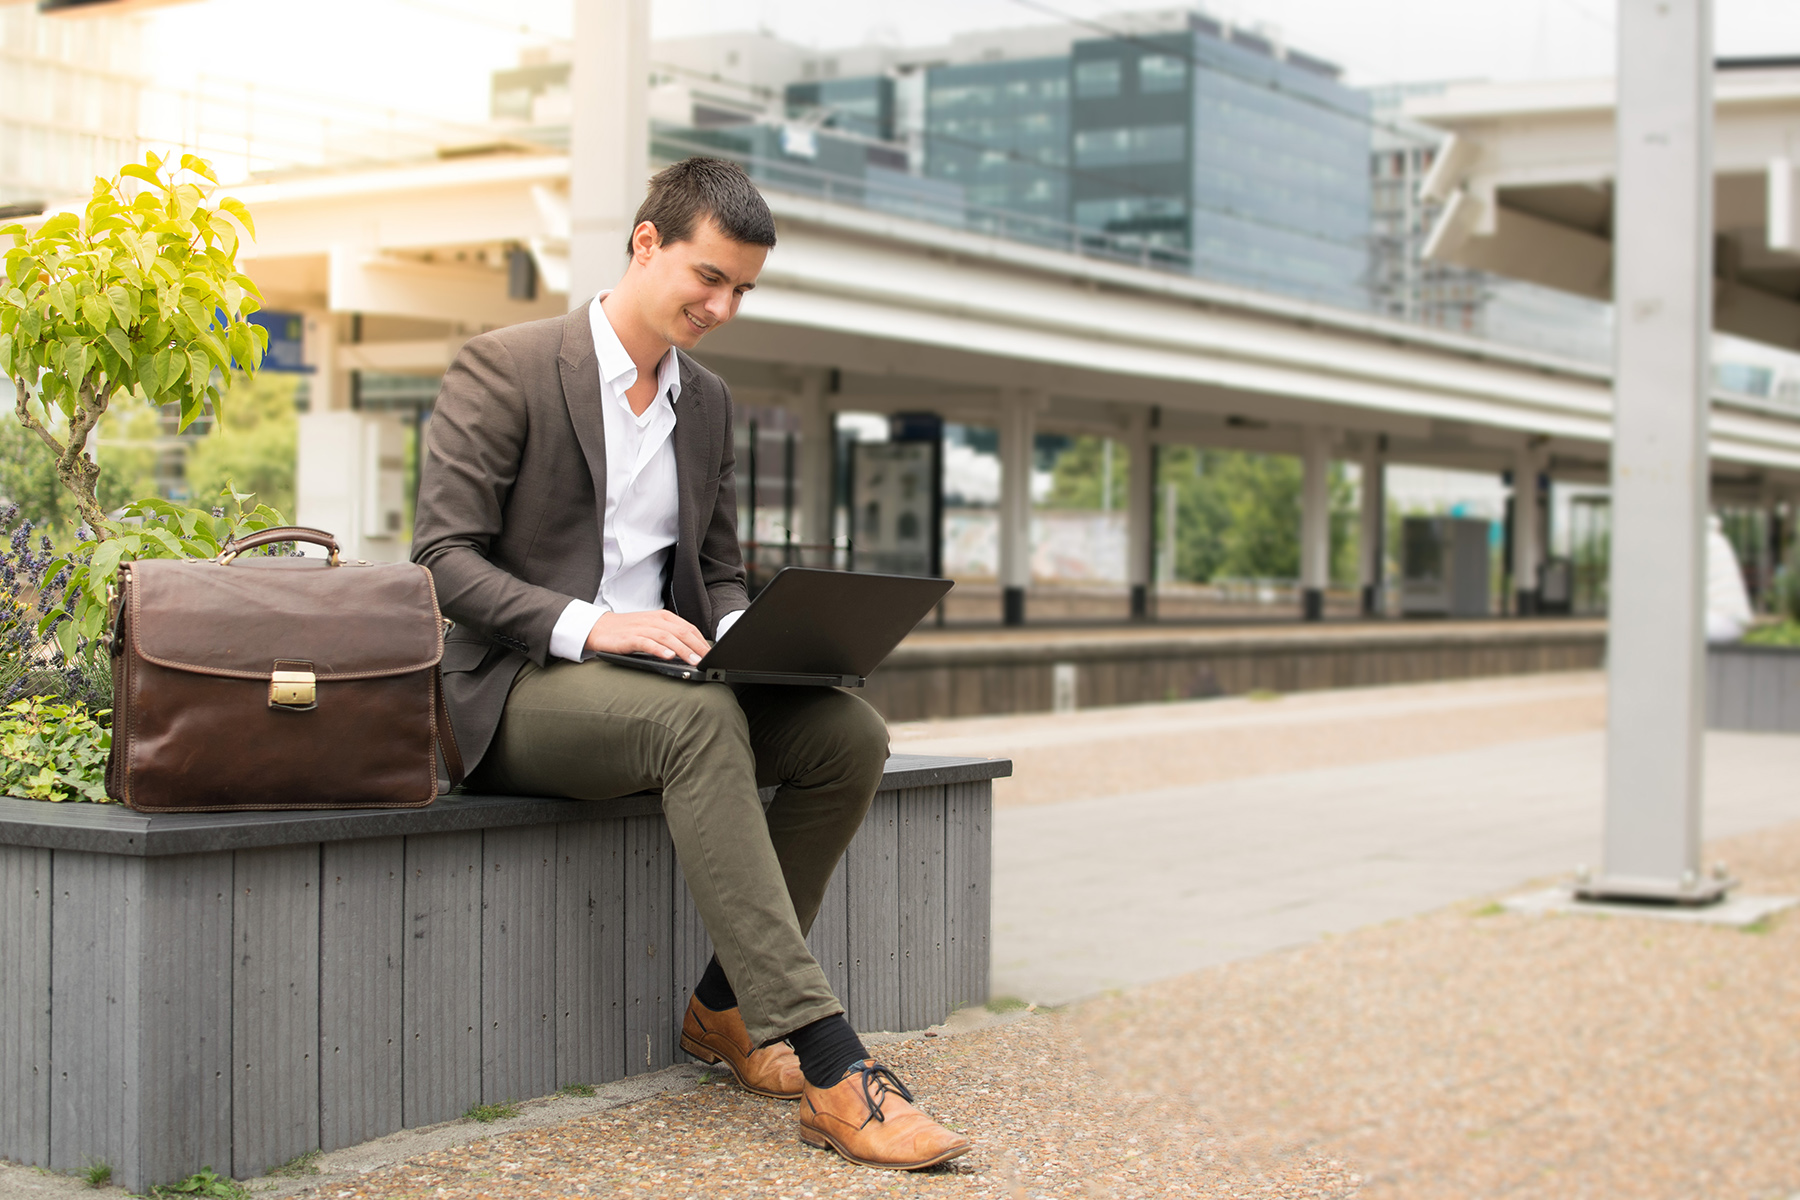 A freelancer works on his laptop at a Dutch train station